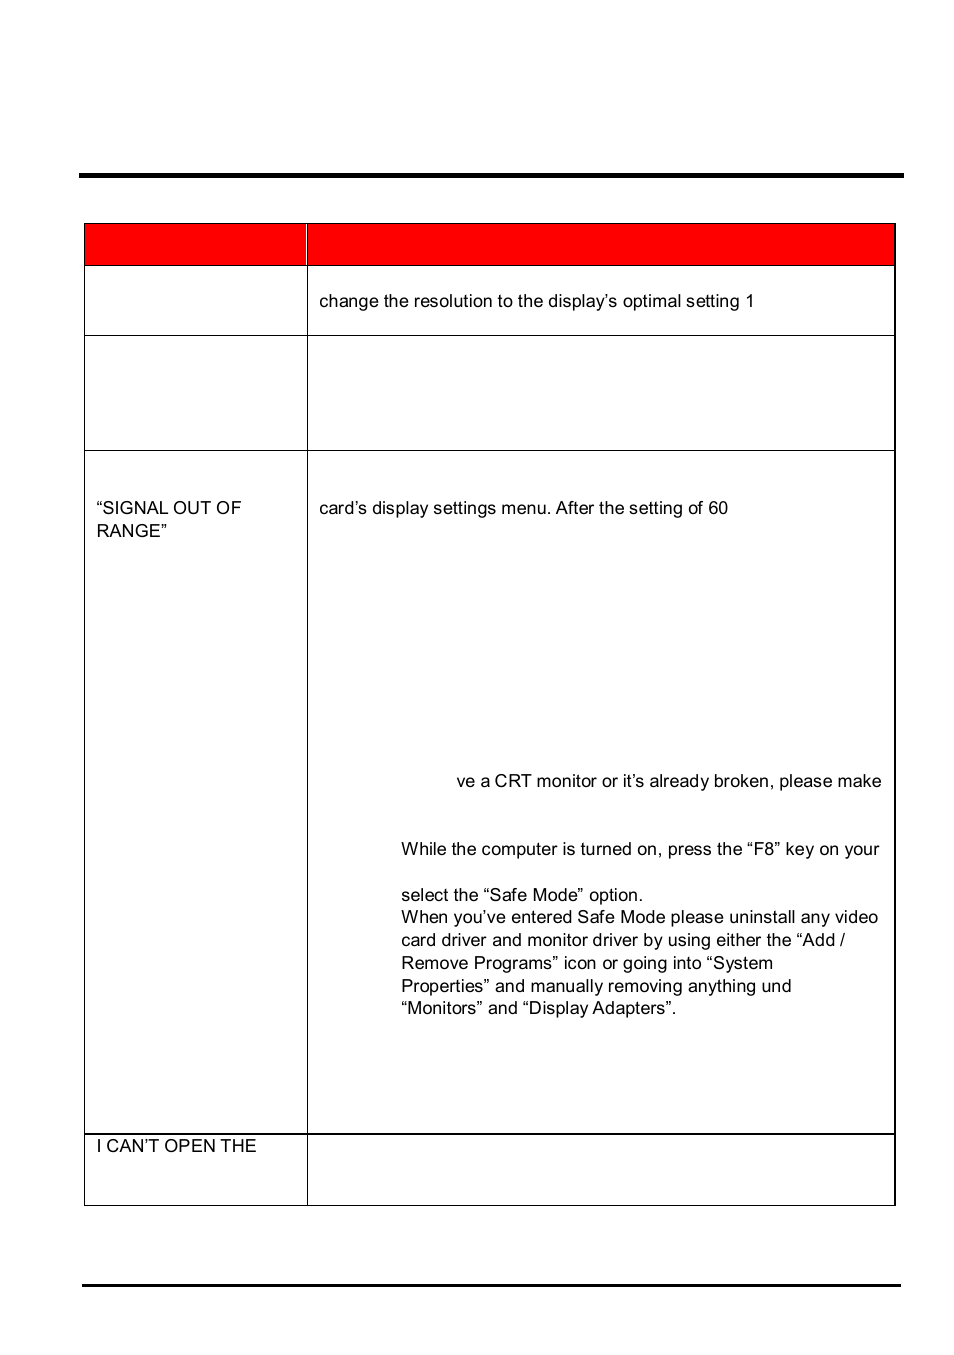 Troubleshooting, Sceptre e22 page25, Problem possible solutions